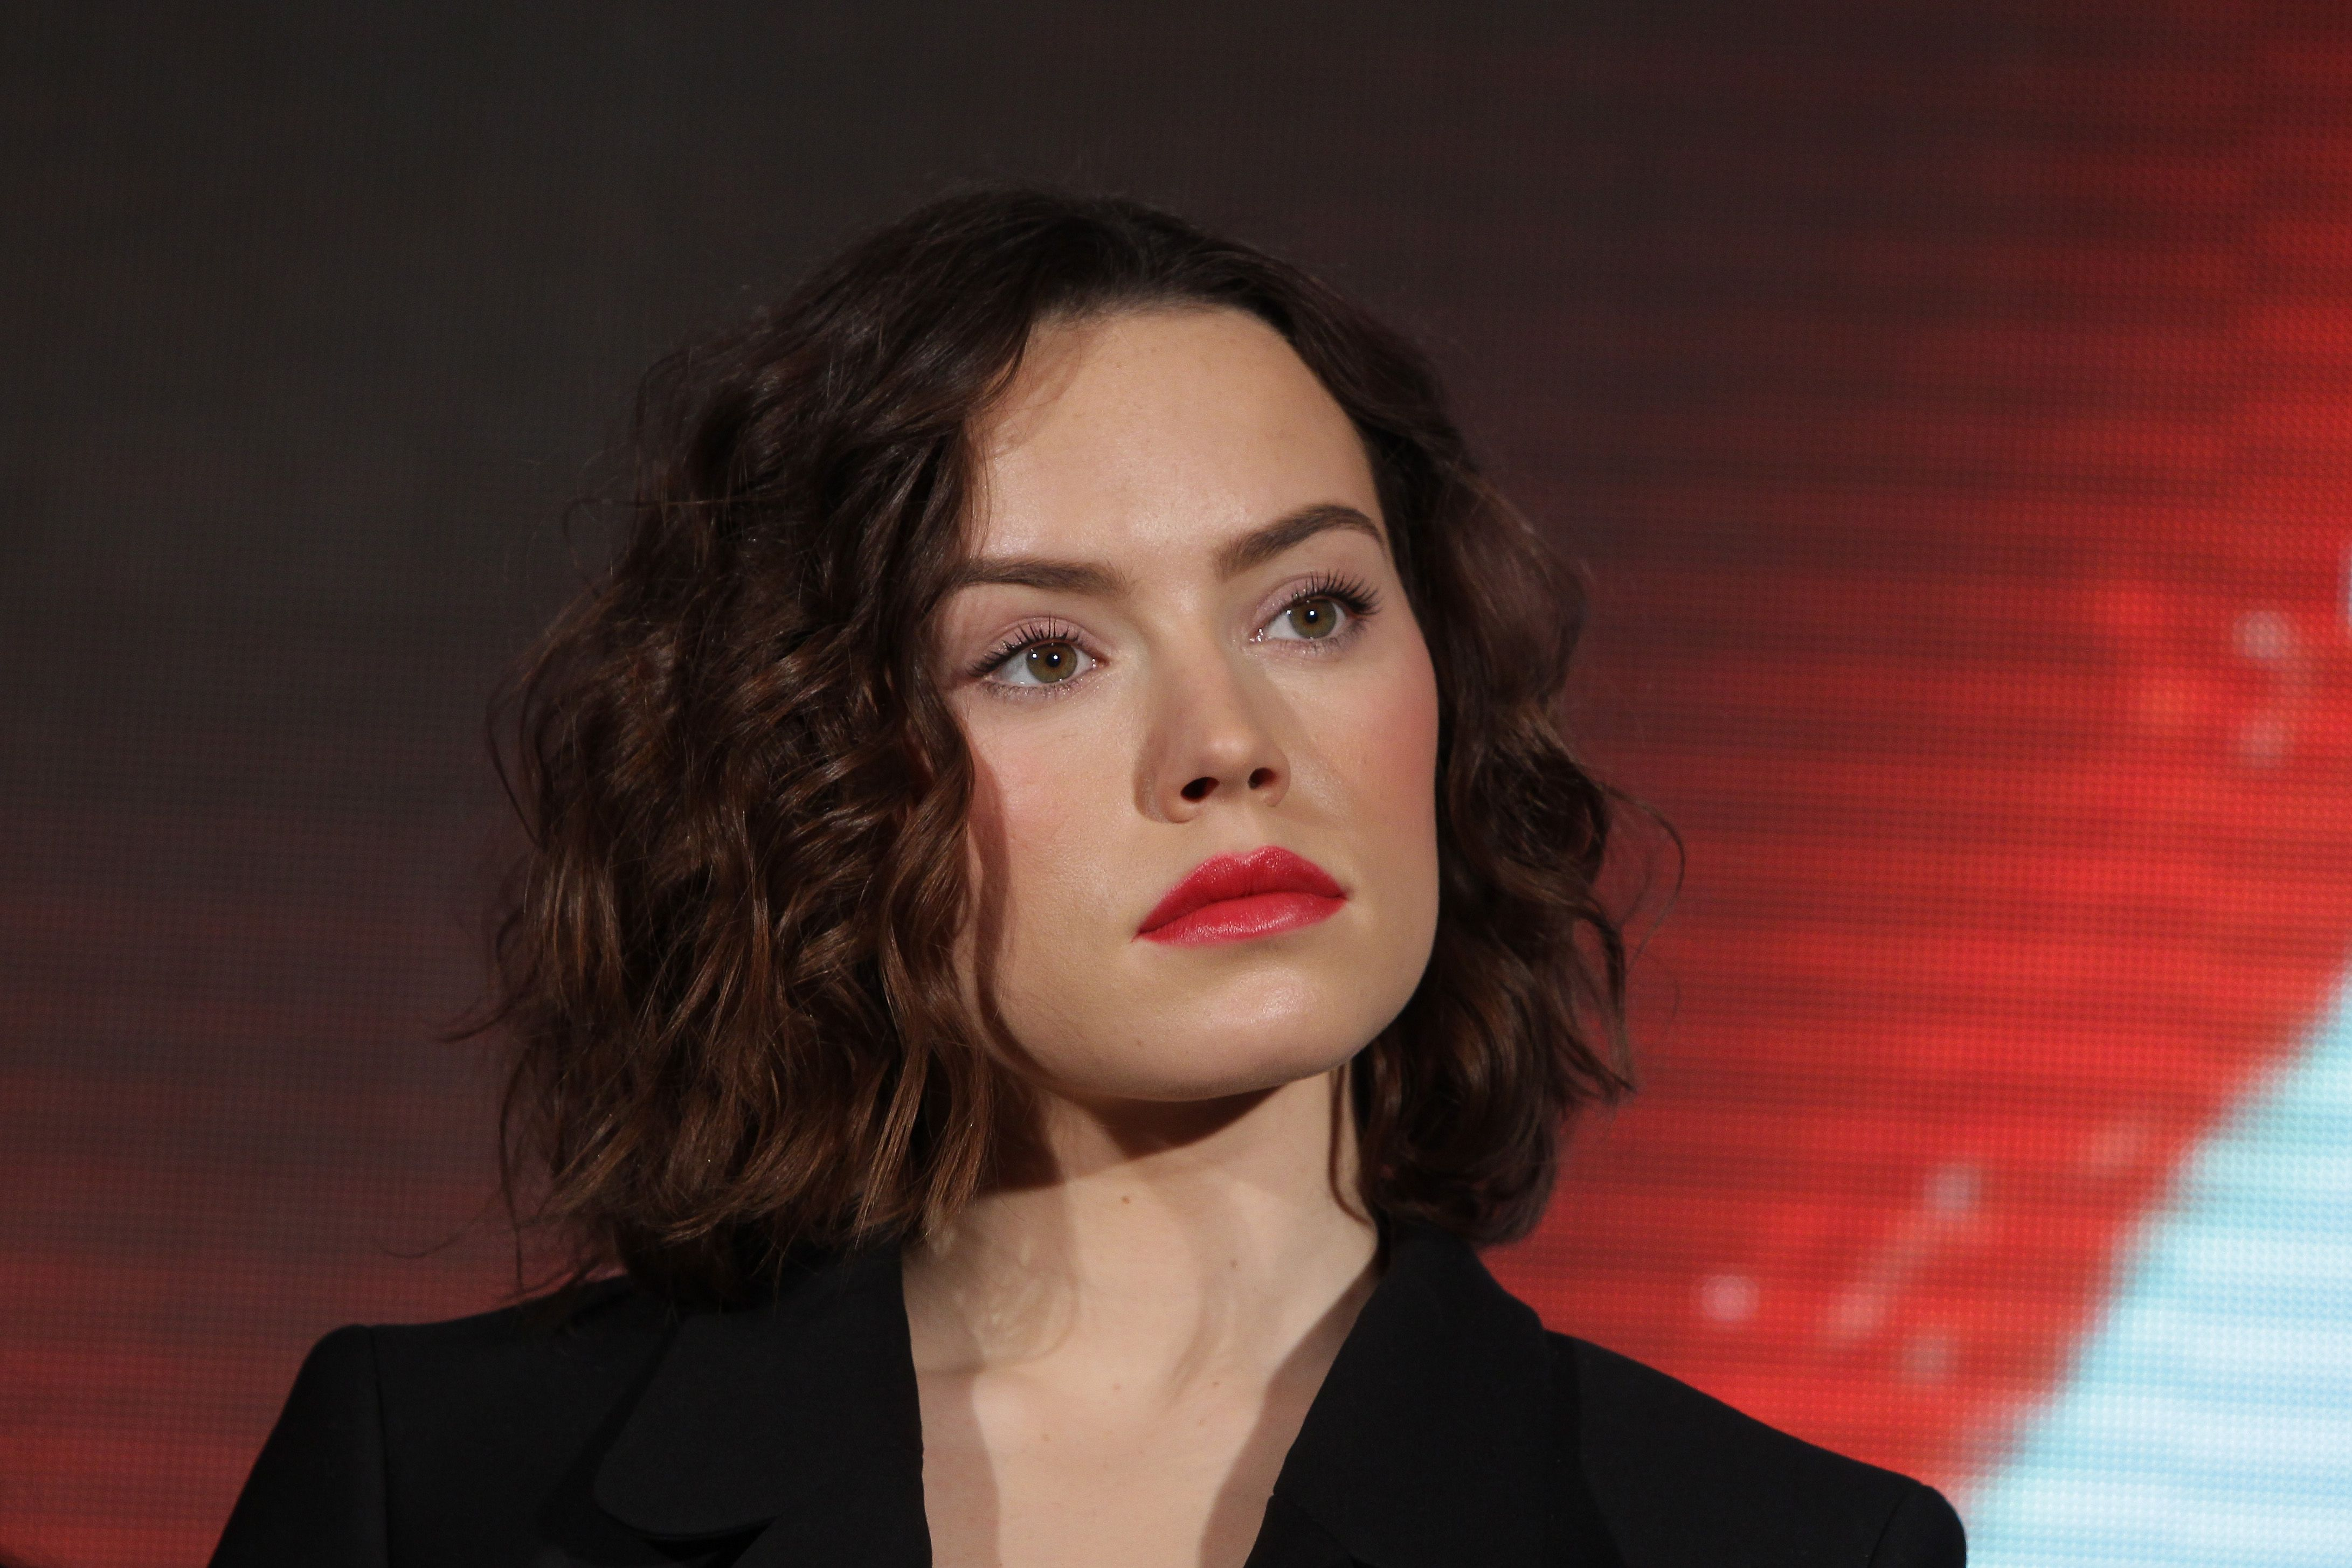 Star Wars: The Rise of Skywalker's Daisy Ridley faces backlash over 'privilege' comments